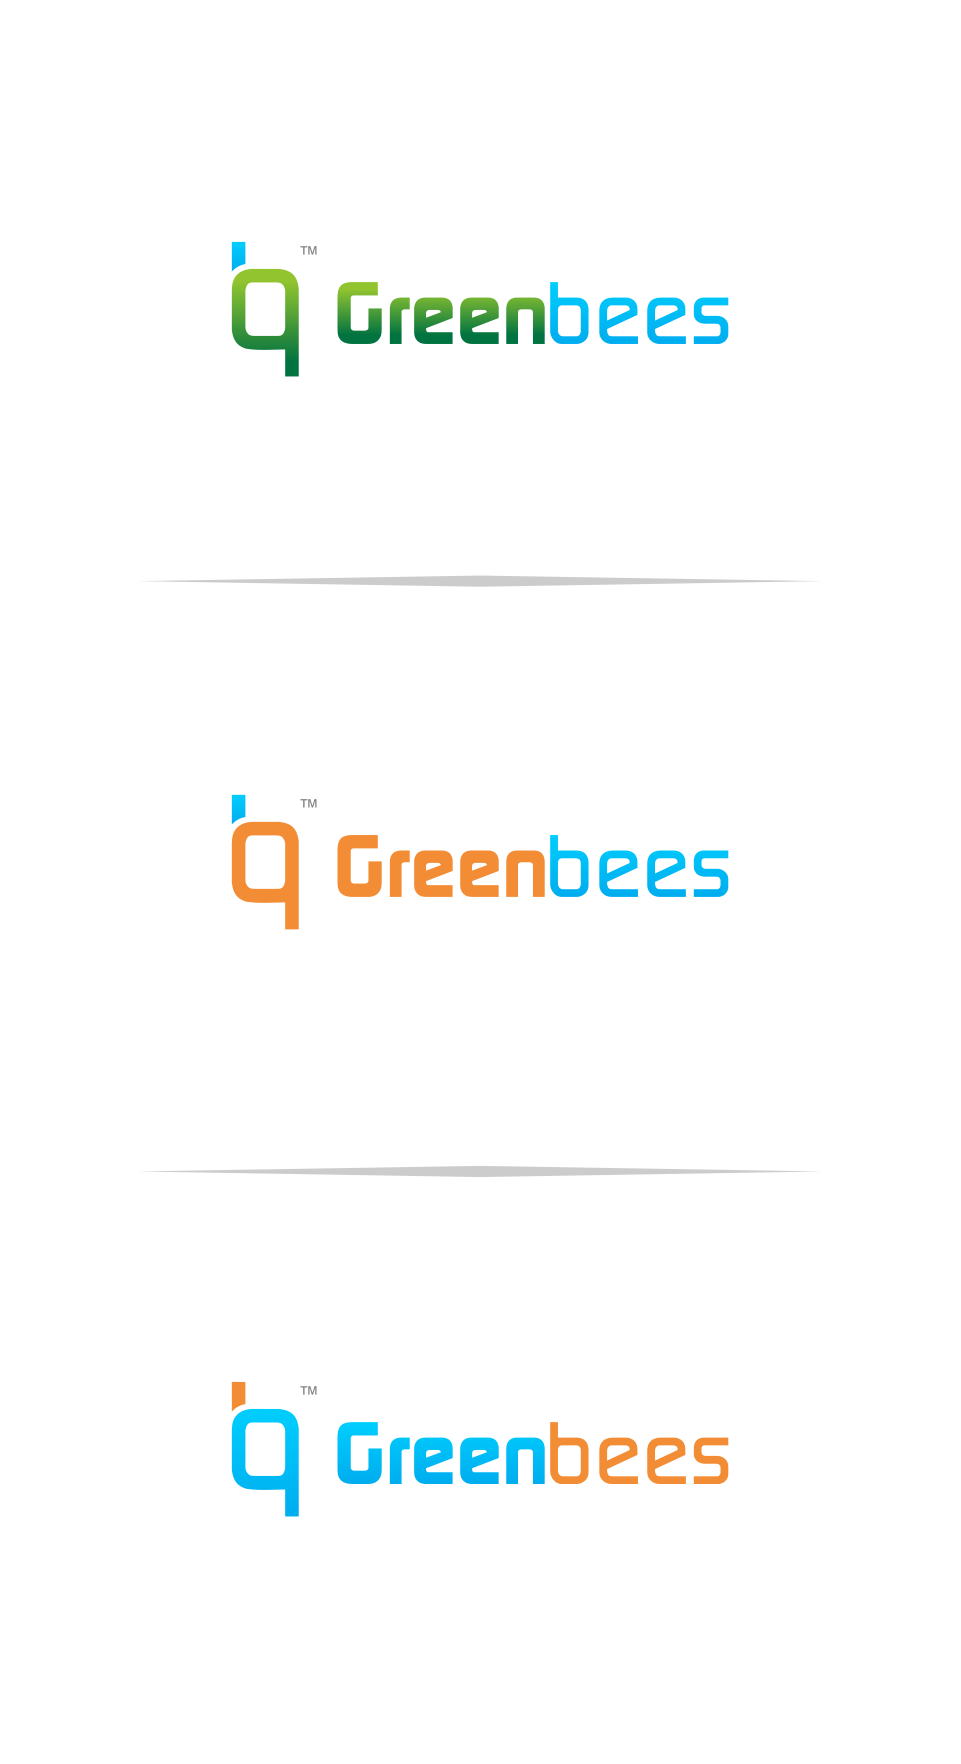 Logo Design by Mitchnick Sunardi - Entry No. 26 in the Logo Design Contest Greenbees Logo Design.